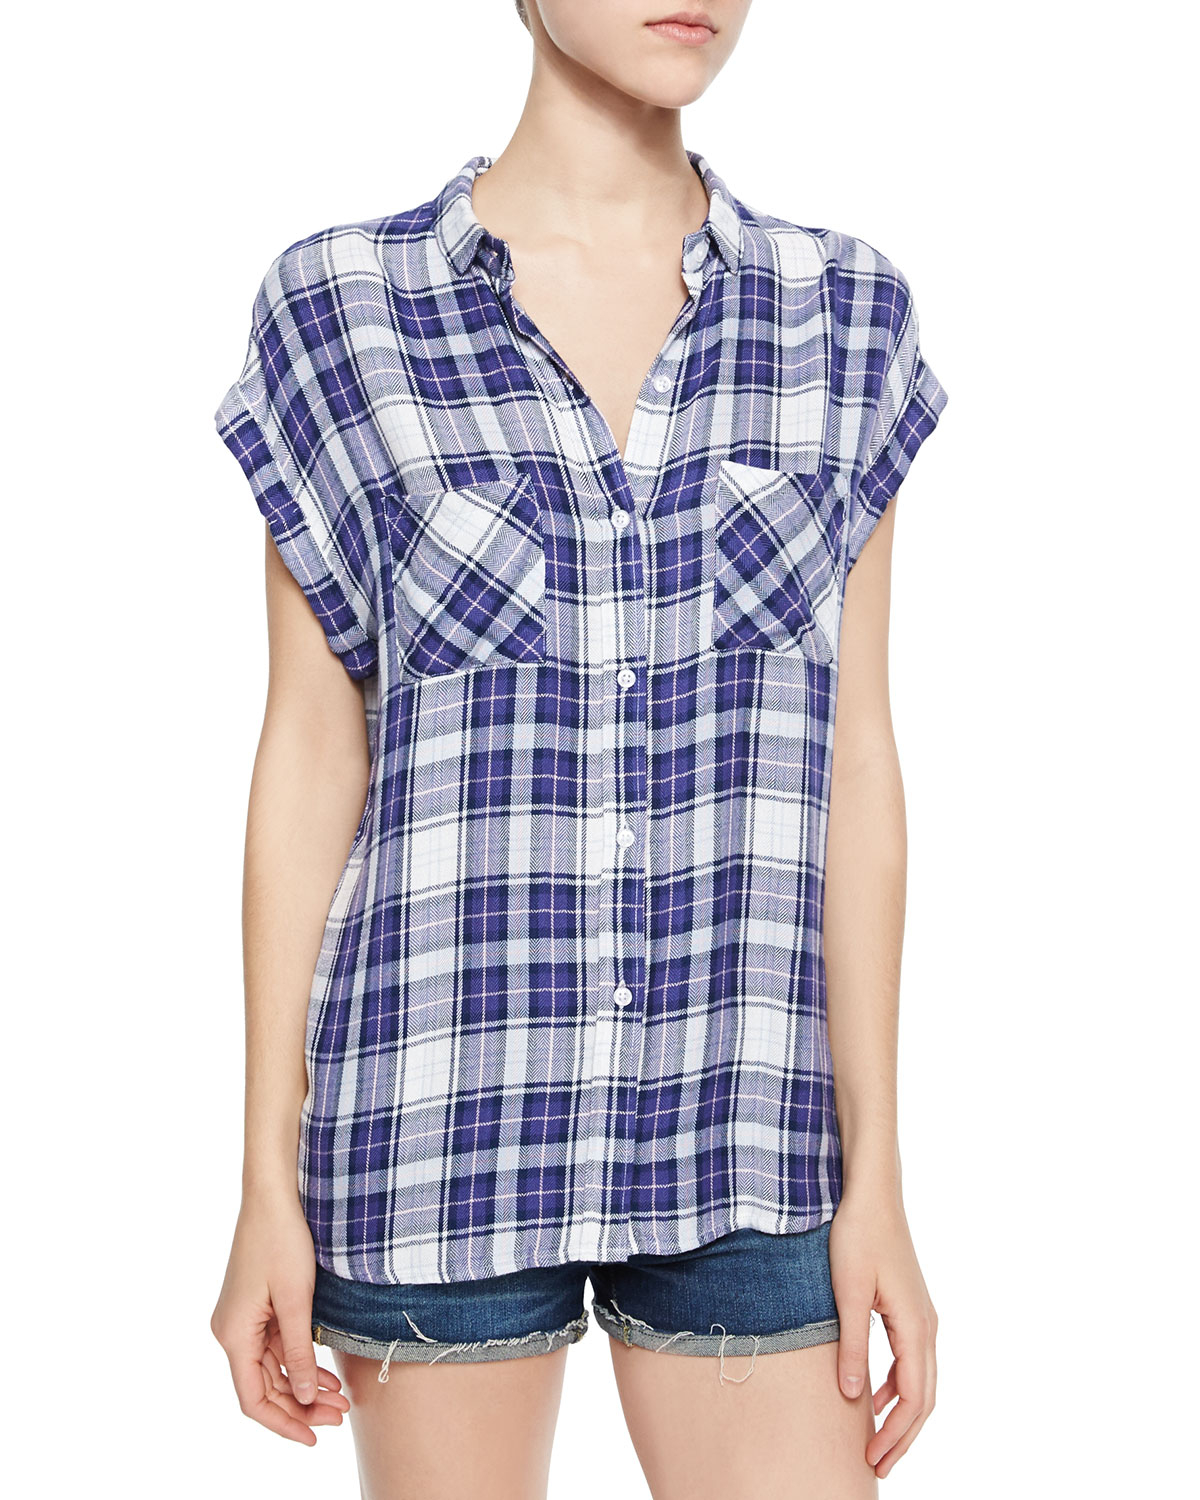 Rails britt short sleeve plaid shirt in purple lavender Short sleeve plaid shirts